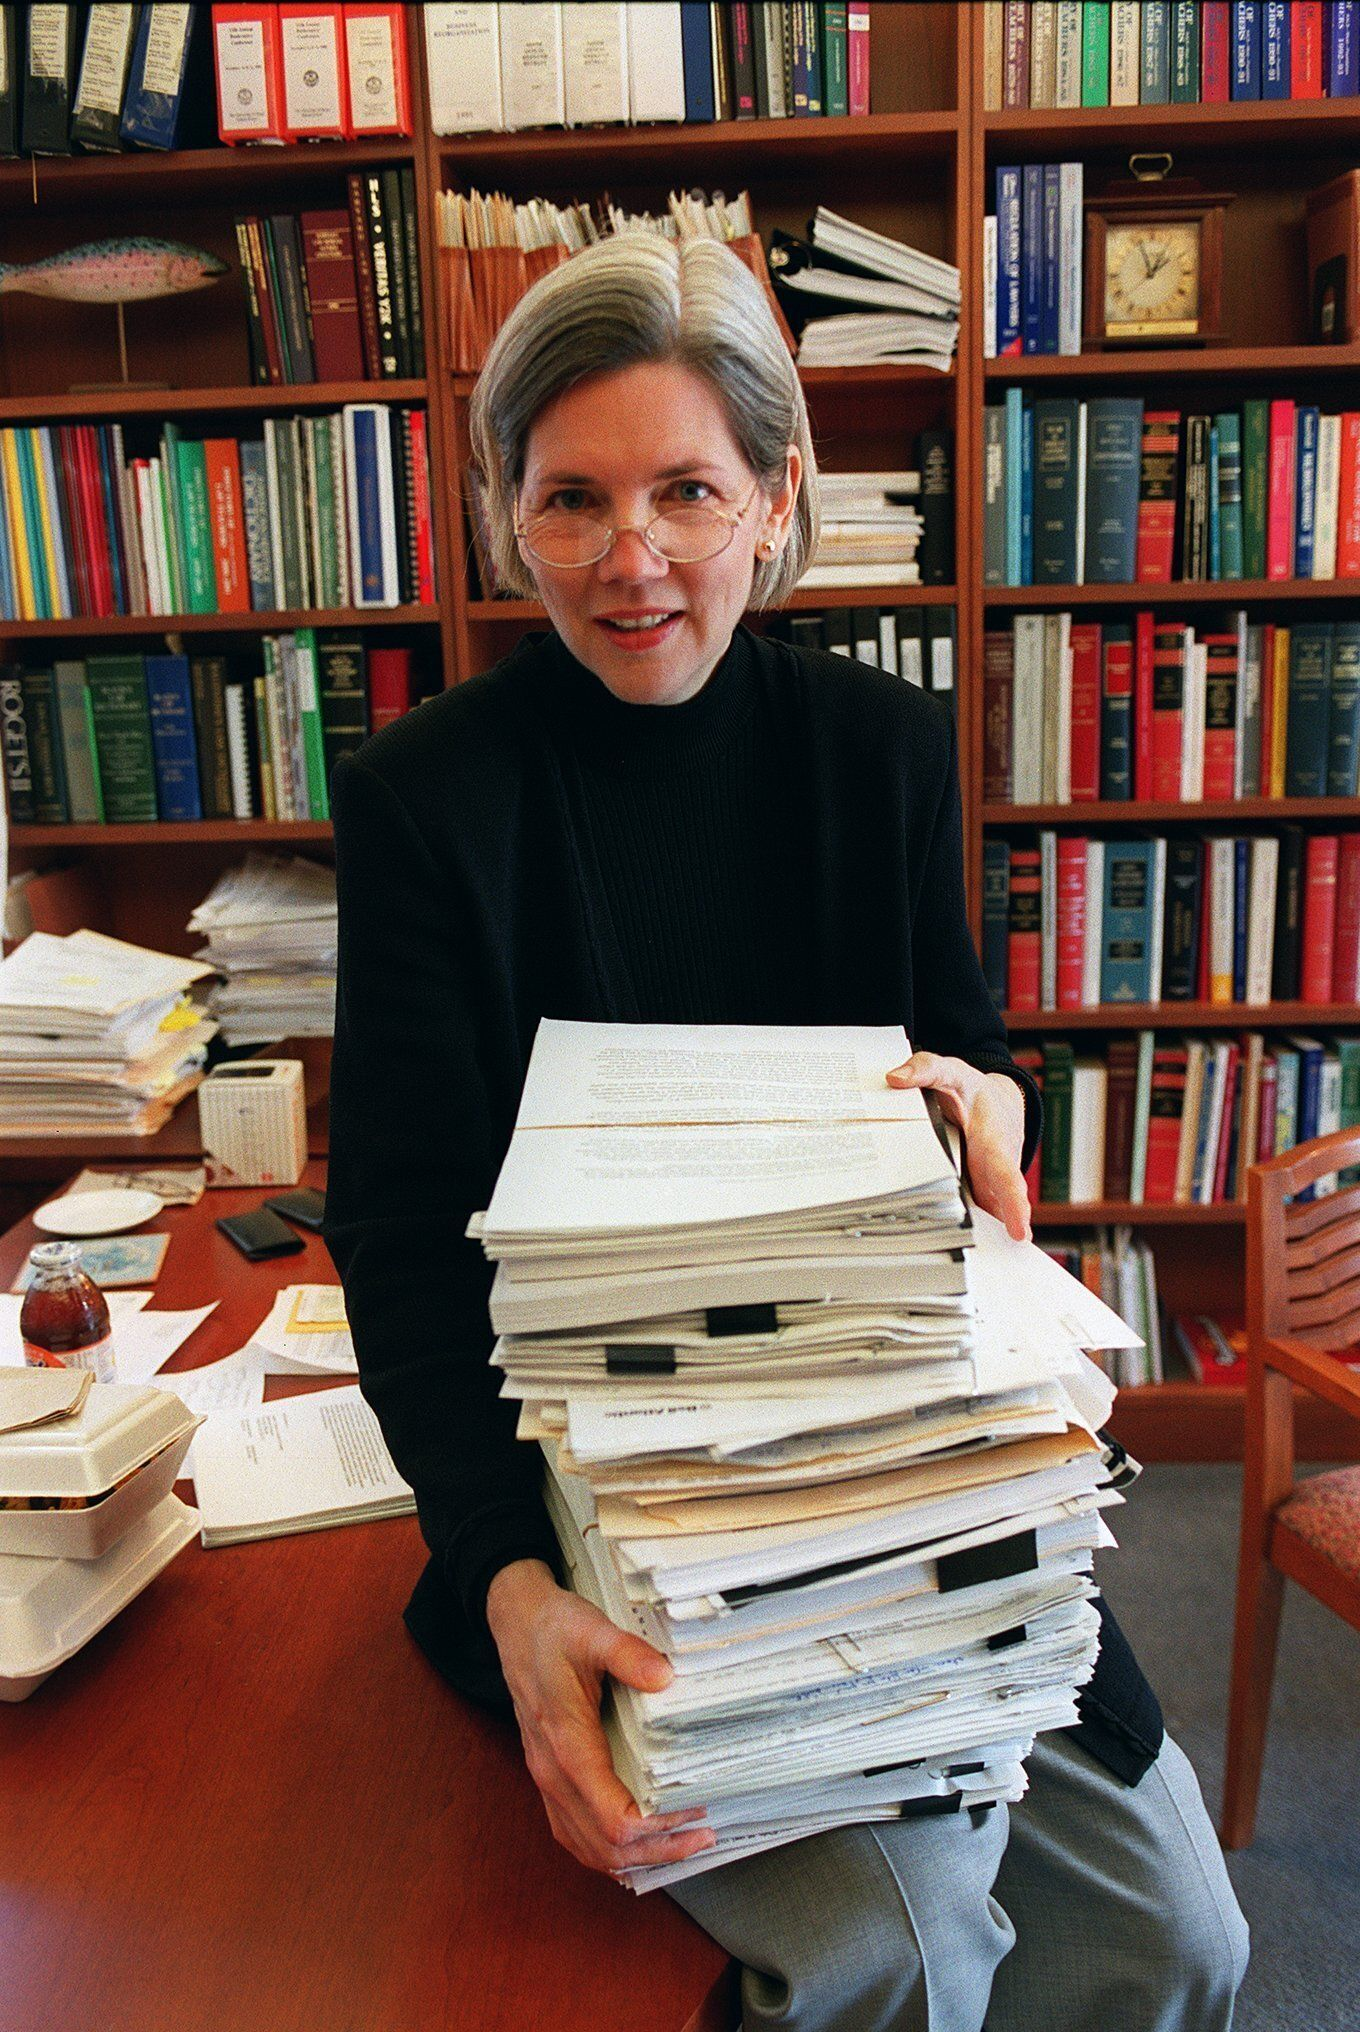 Warren, pictured in 2001 when she was a Harvard Law School professor, was a leading opponent of the bankruptcy bills champion